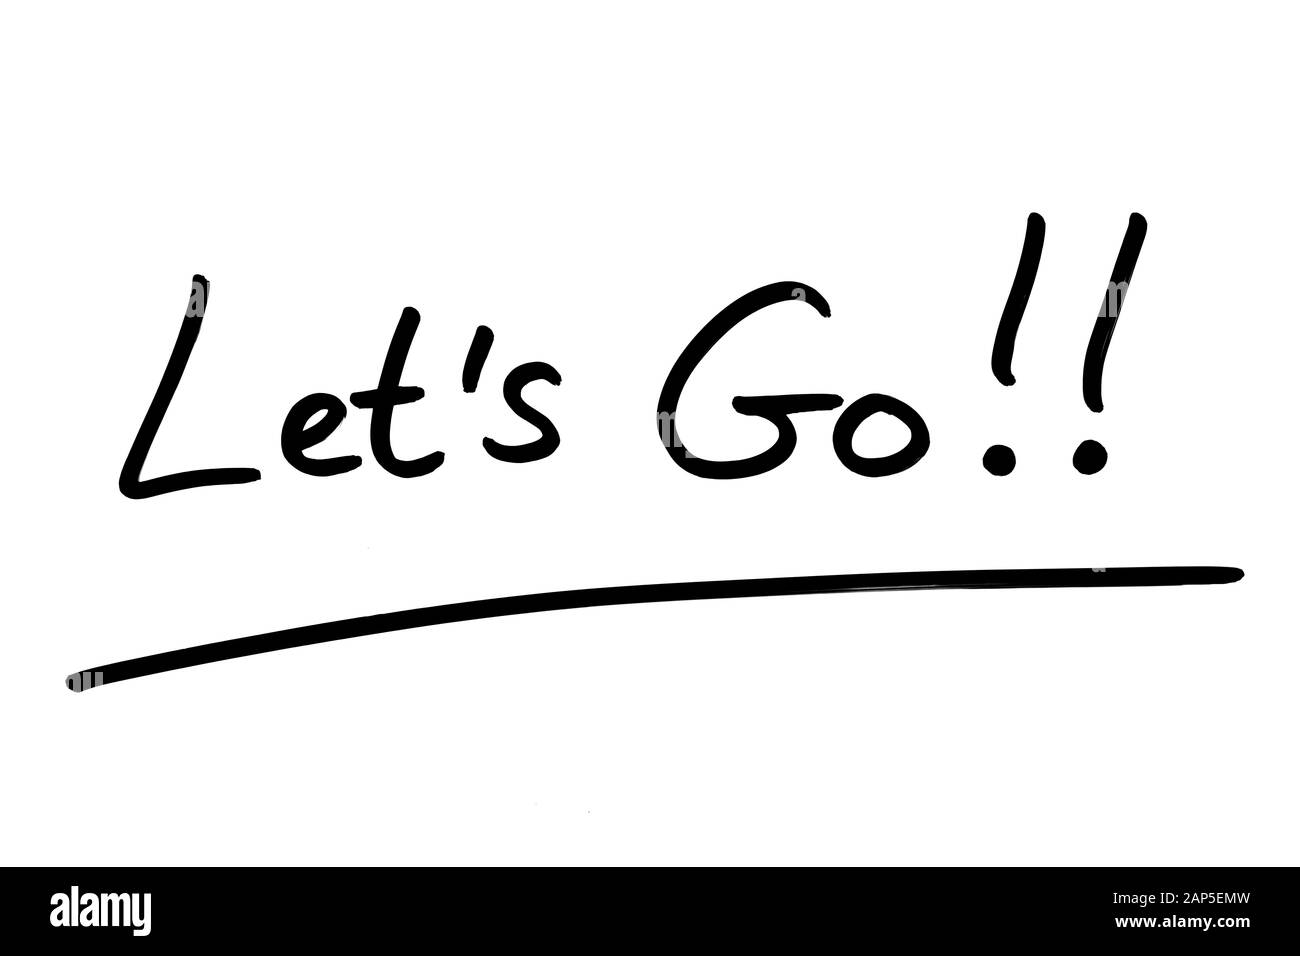 Lets Go!! handwritten on a white background. Stock Photo